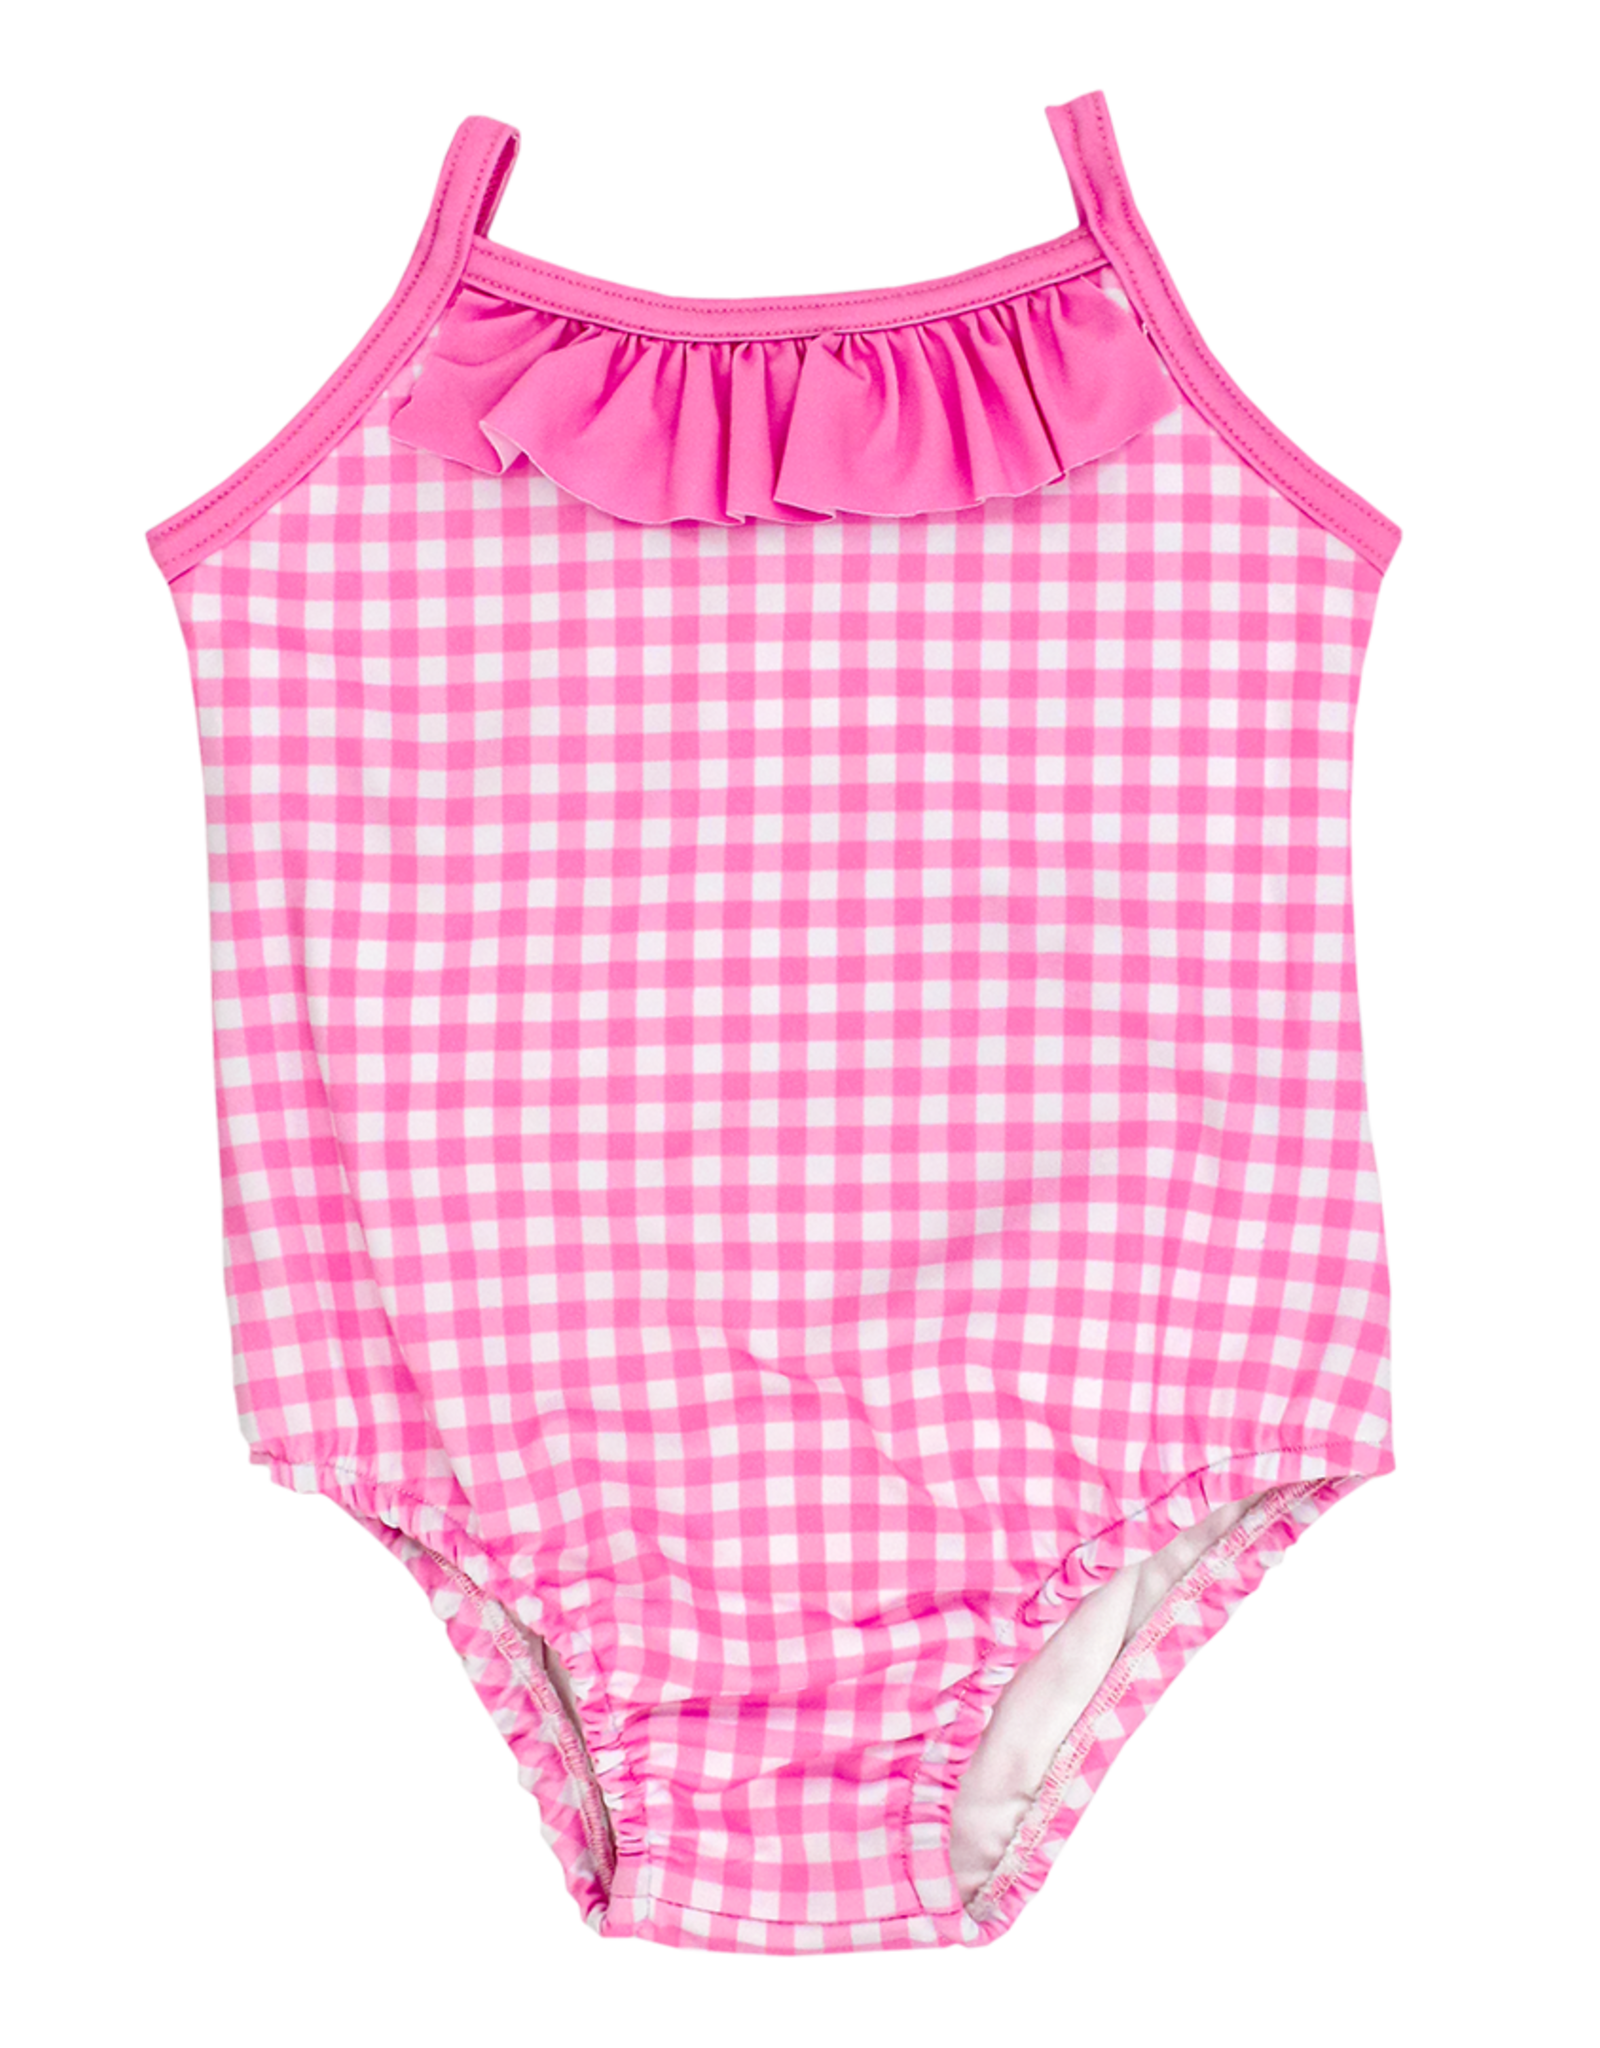 The Bailey Boys Pink Gingham Swimsuit